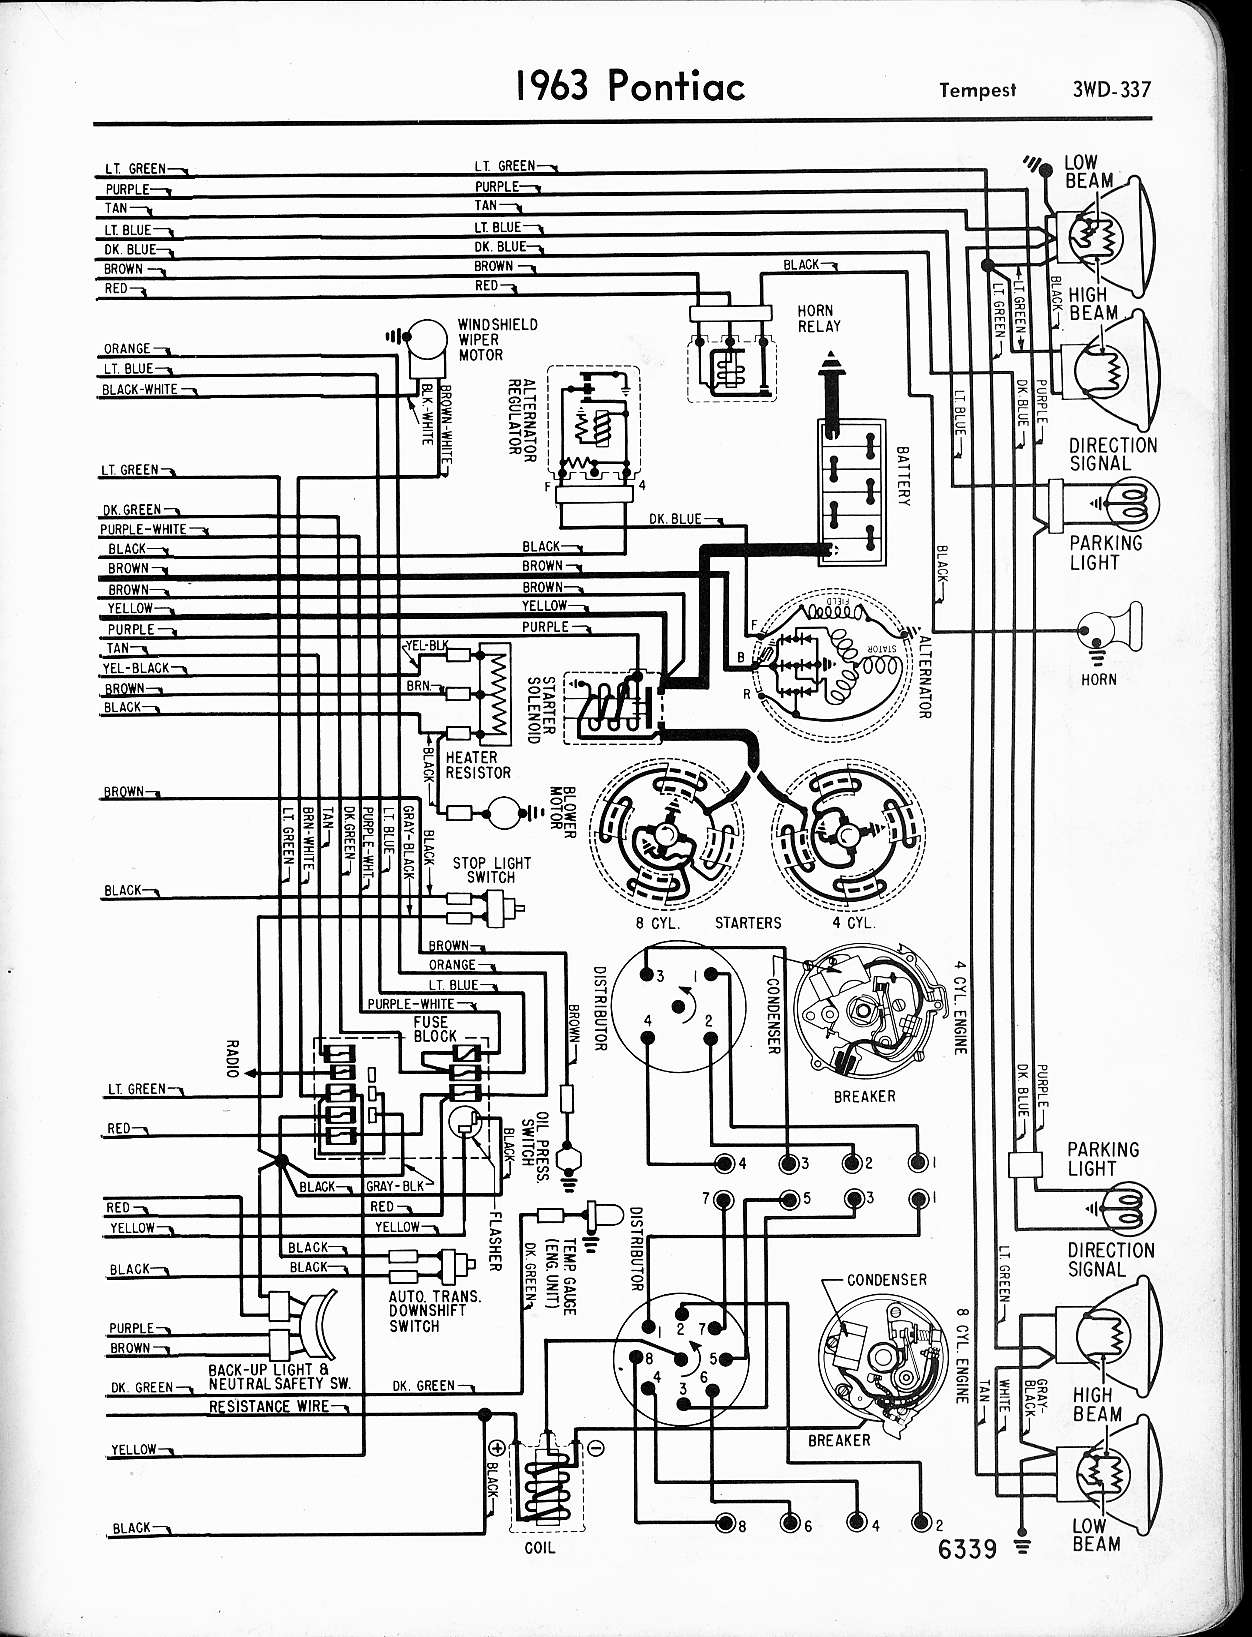 1980 Trans Am Fuse Box Wiring Library Diagram 1979 Firebird Formula 1967 Pontiac Gto Layout Diagrams U2022 Rh Laurafinlay Co Uk Corvette